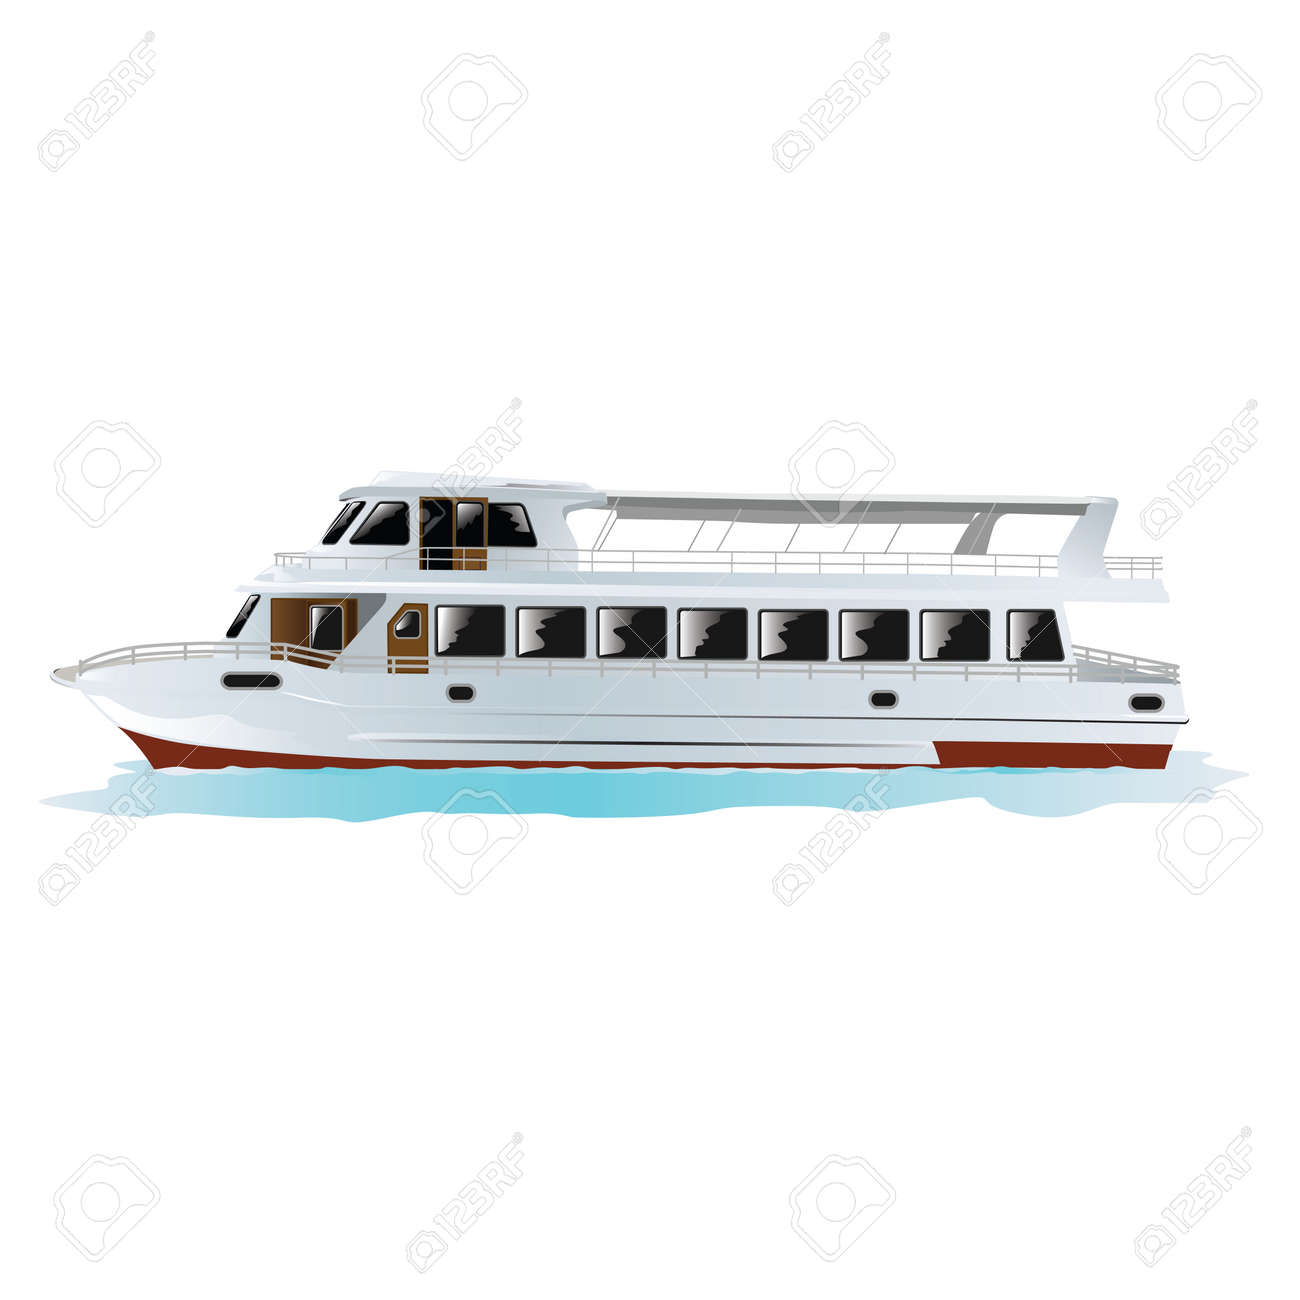 Traditional Turkish passenger boat in Istanbul, Turkey. Isolated on white. Vector, illustration. Stock Vector - 45222014